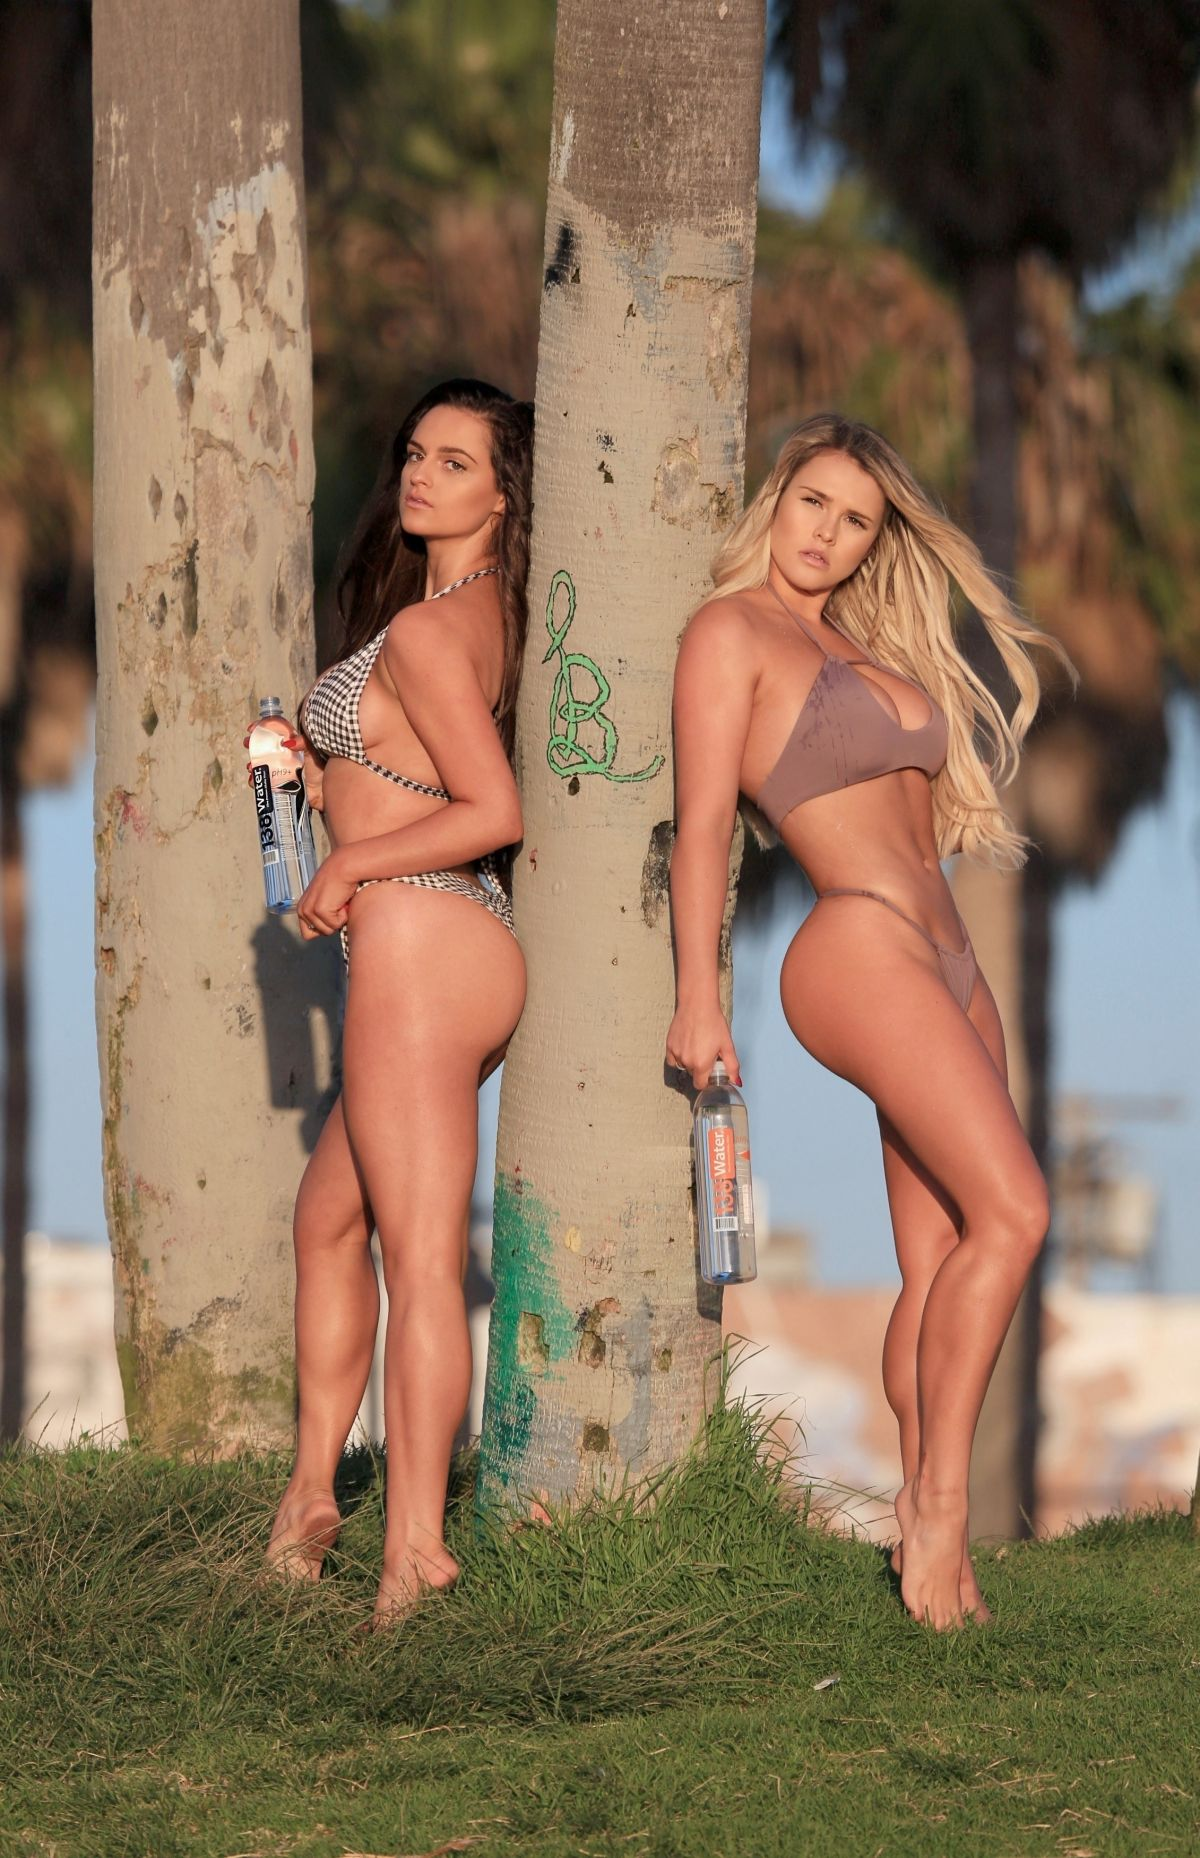 Jamie Leigh and Kinsey Wolanski 138 Water Bikini Photoshoot Pic 17 of 35